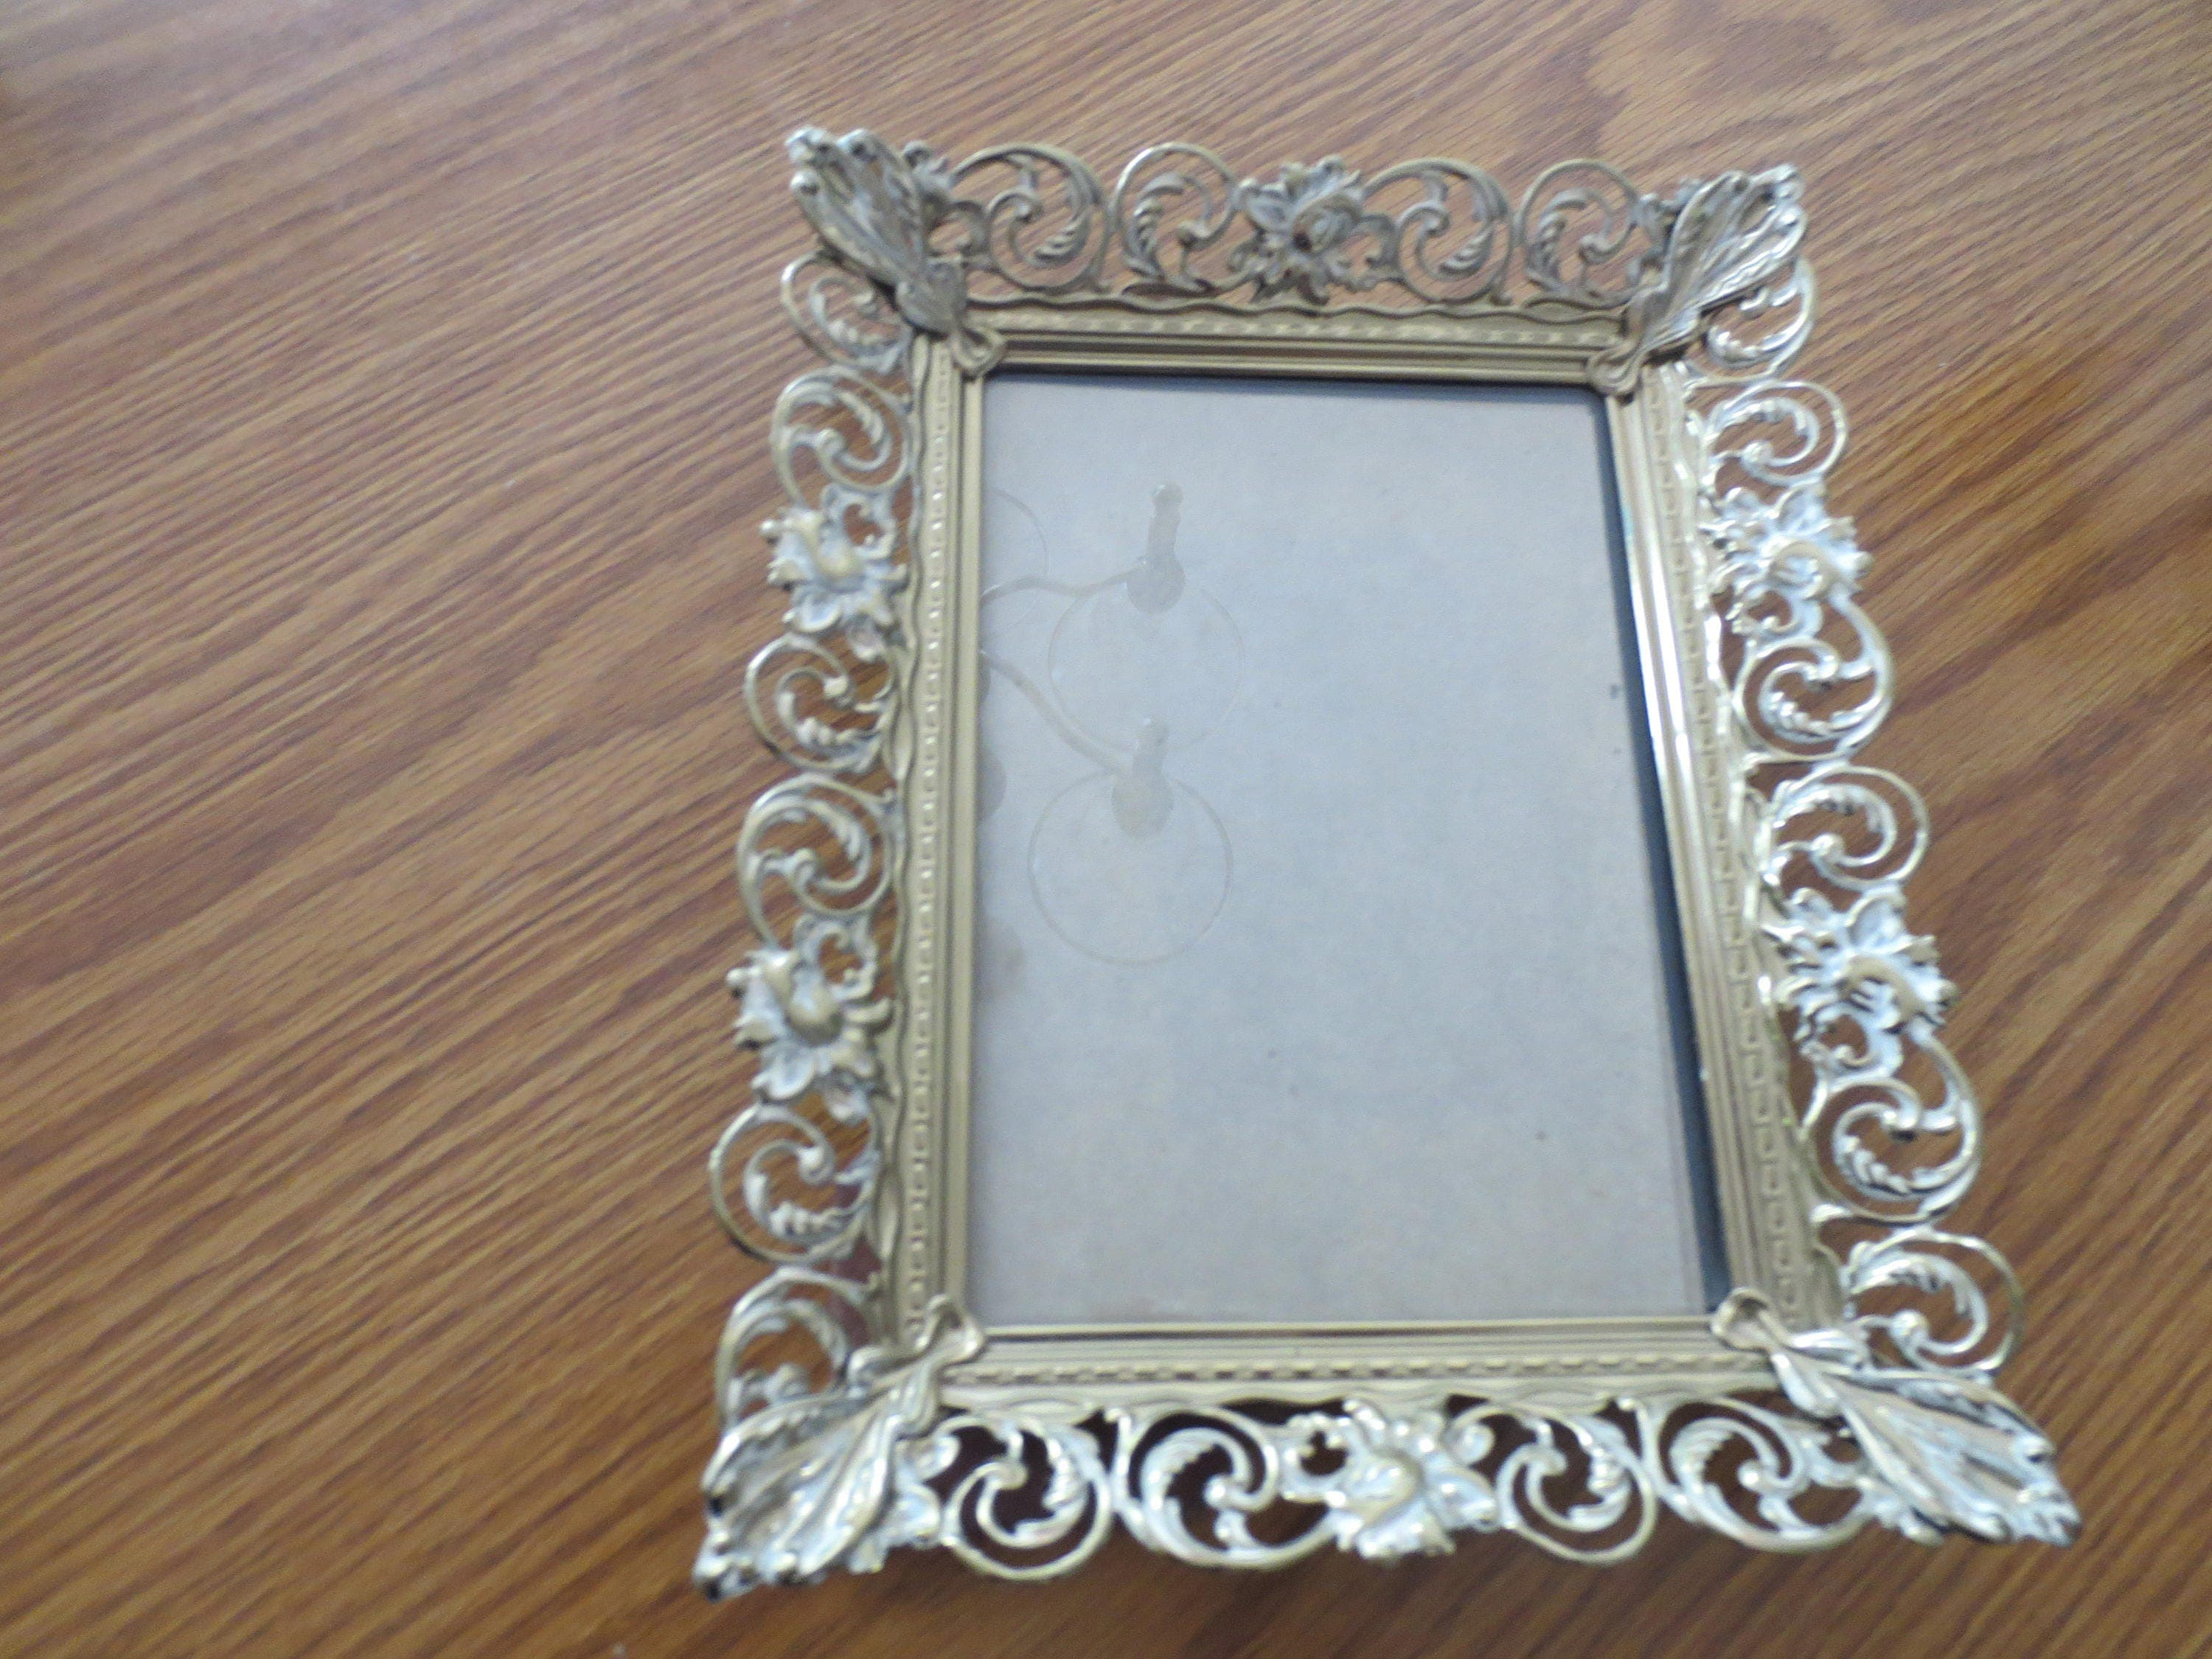 Vintage metal gold toned ornate frames filagree picture frames 7 metal frame decorative frame sold by screenporchvintage jeuxipadfo Image collections